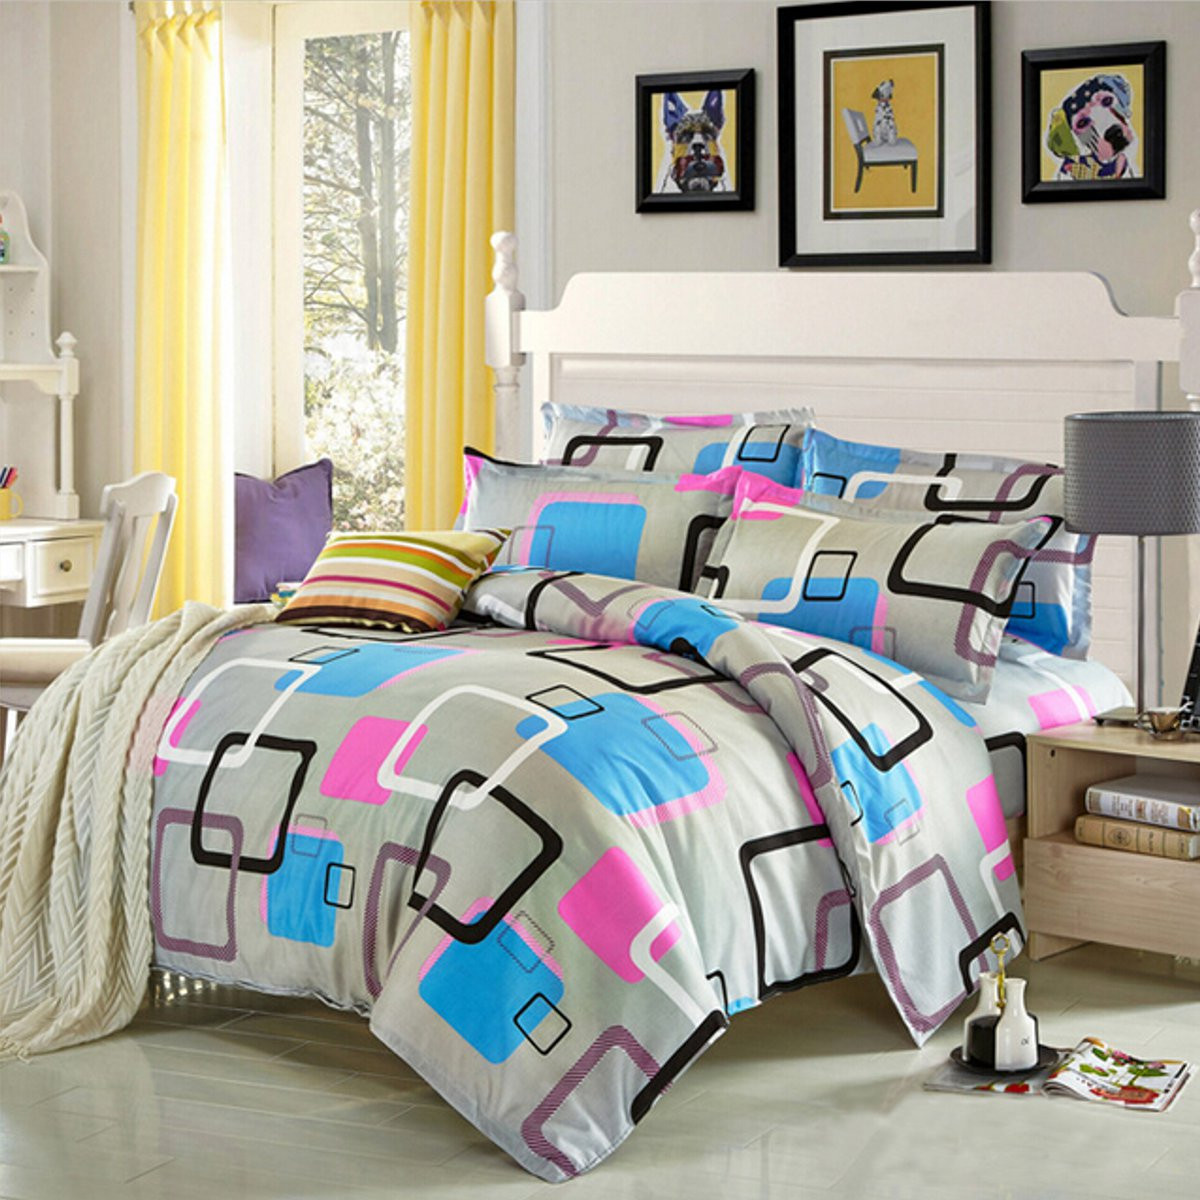 duvet cover with pillow case quilt cover bedding set all size single double king ebay. Black Bedroom Furniture Sets. Home Design Ideas